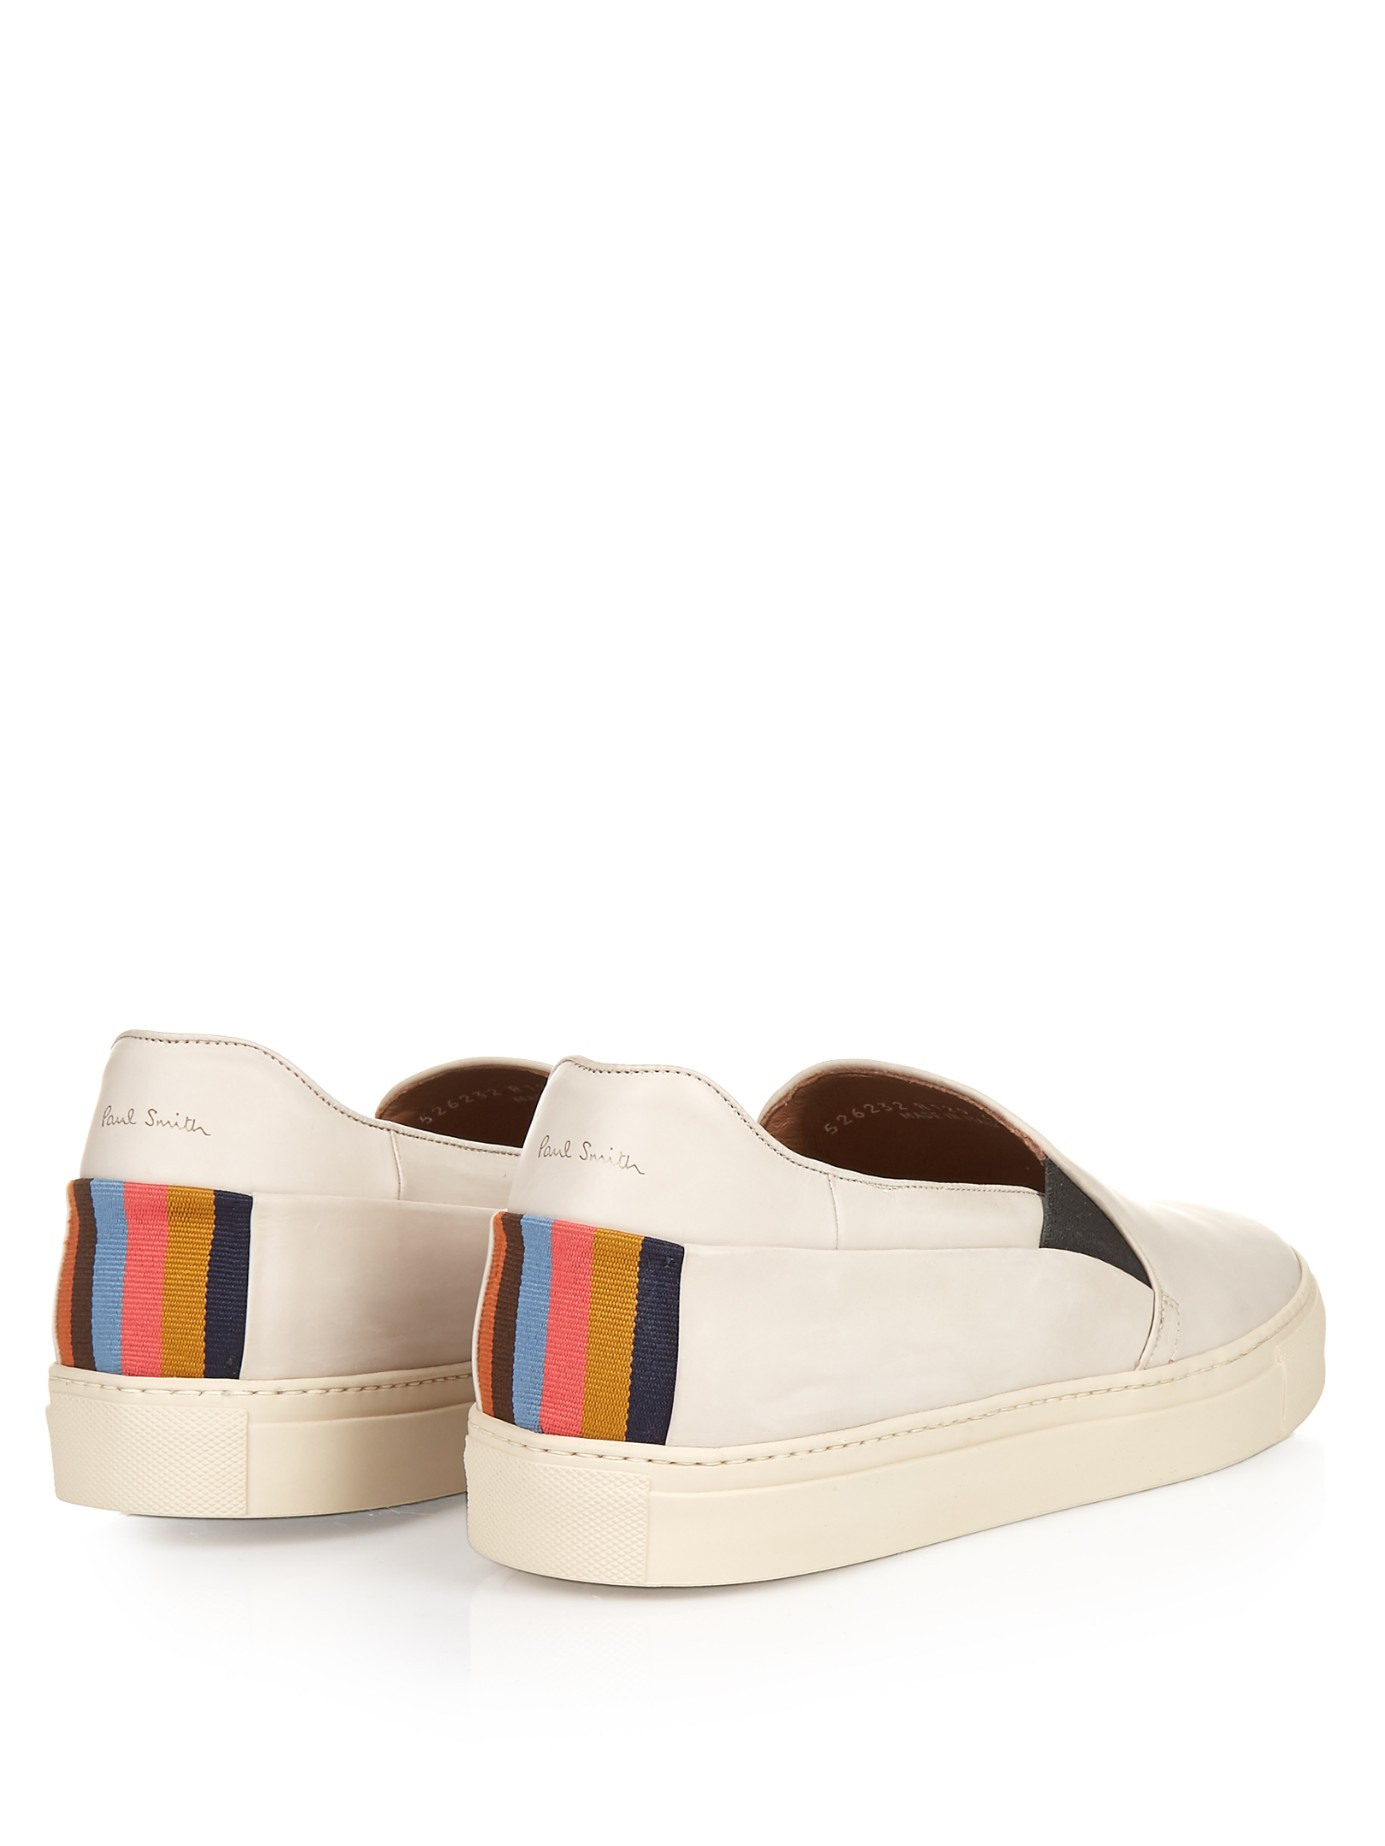 Lyst Paul Smith Zorn Slip On Leather Trainers In White